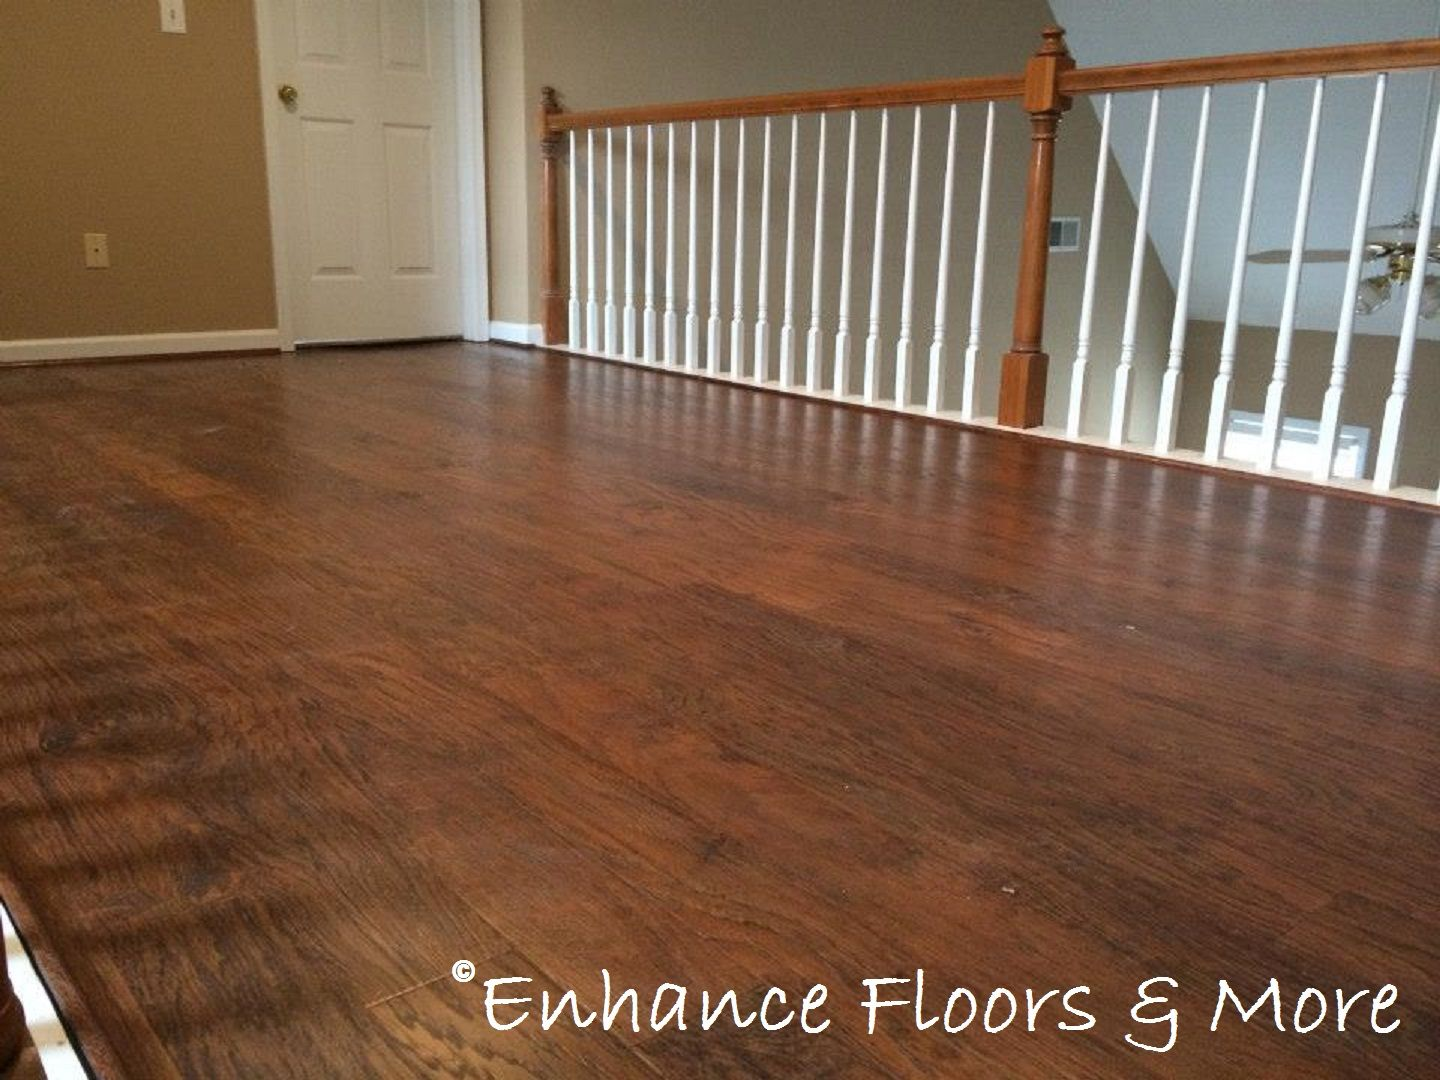 Mohawk flooring laminate style bayview color southern for Mohawk laminate flooring